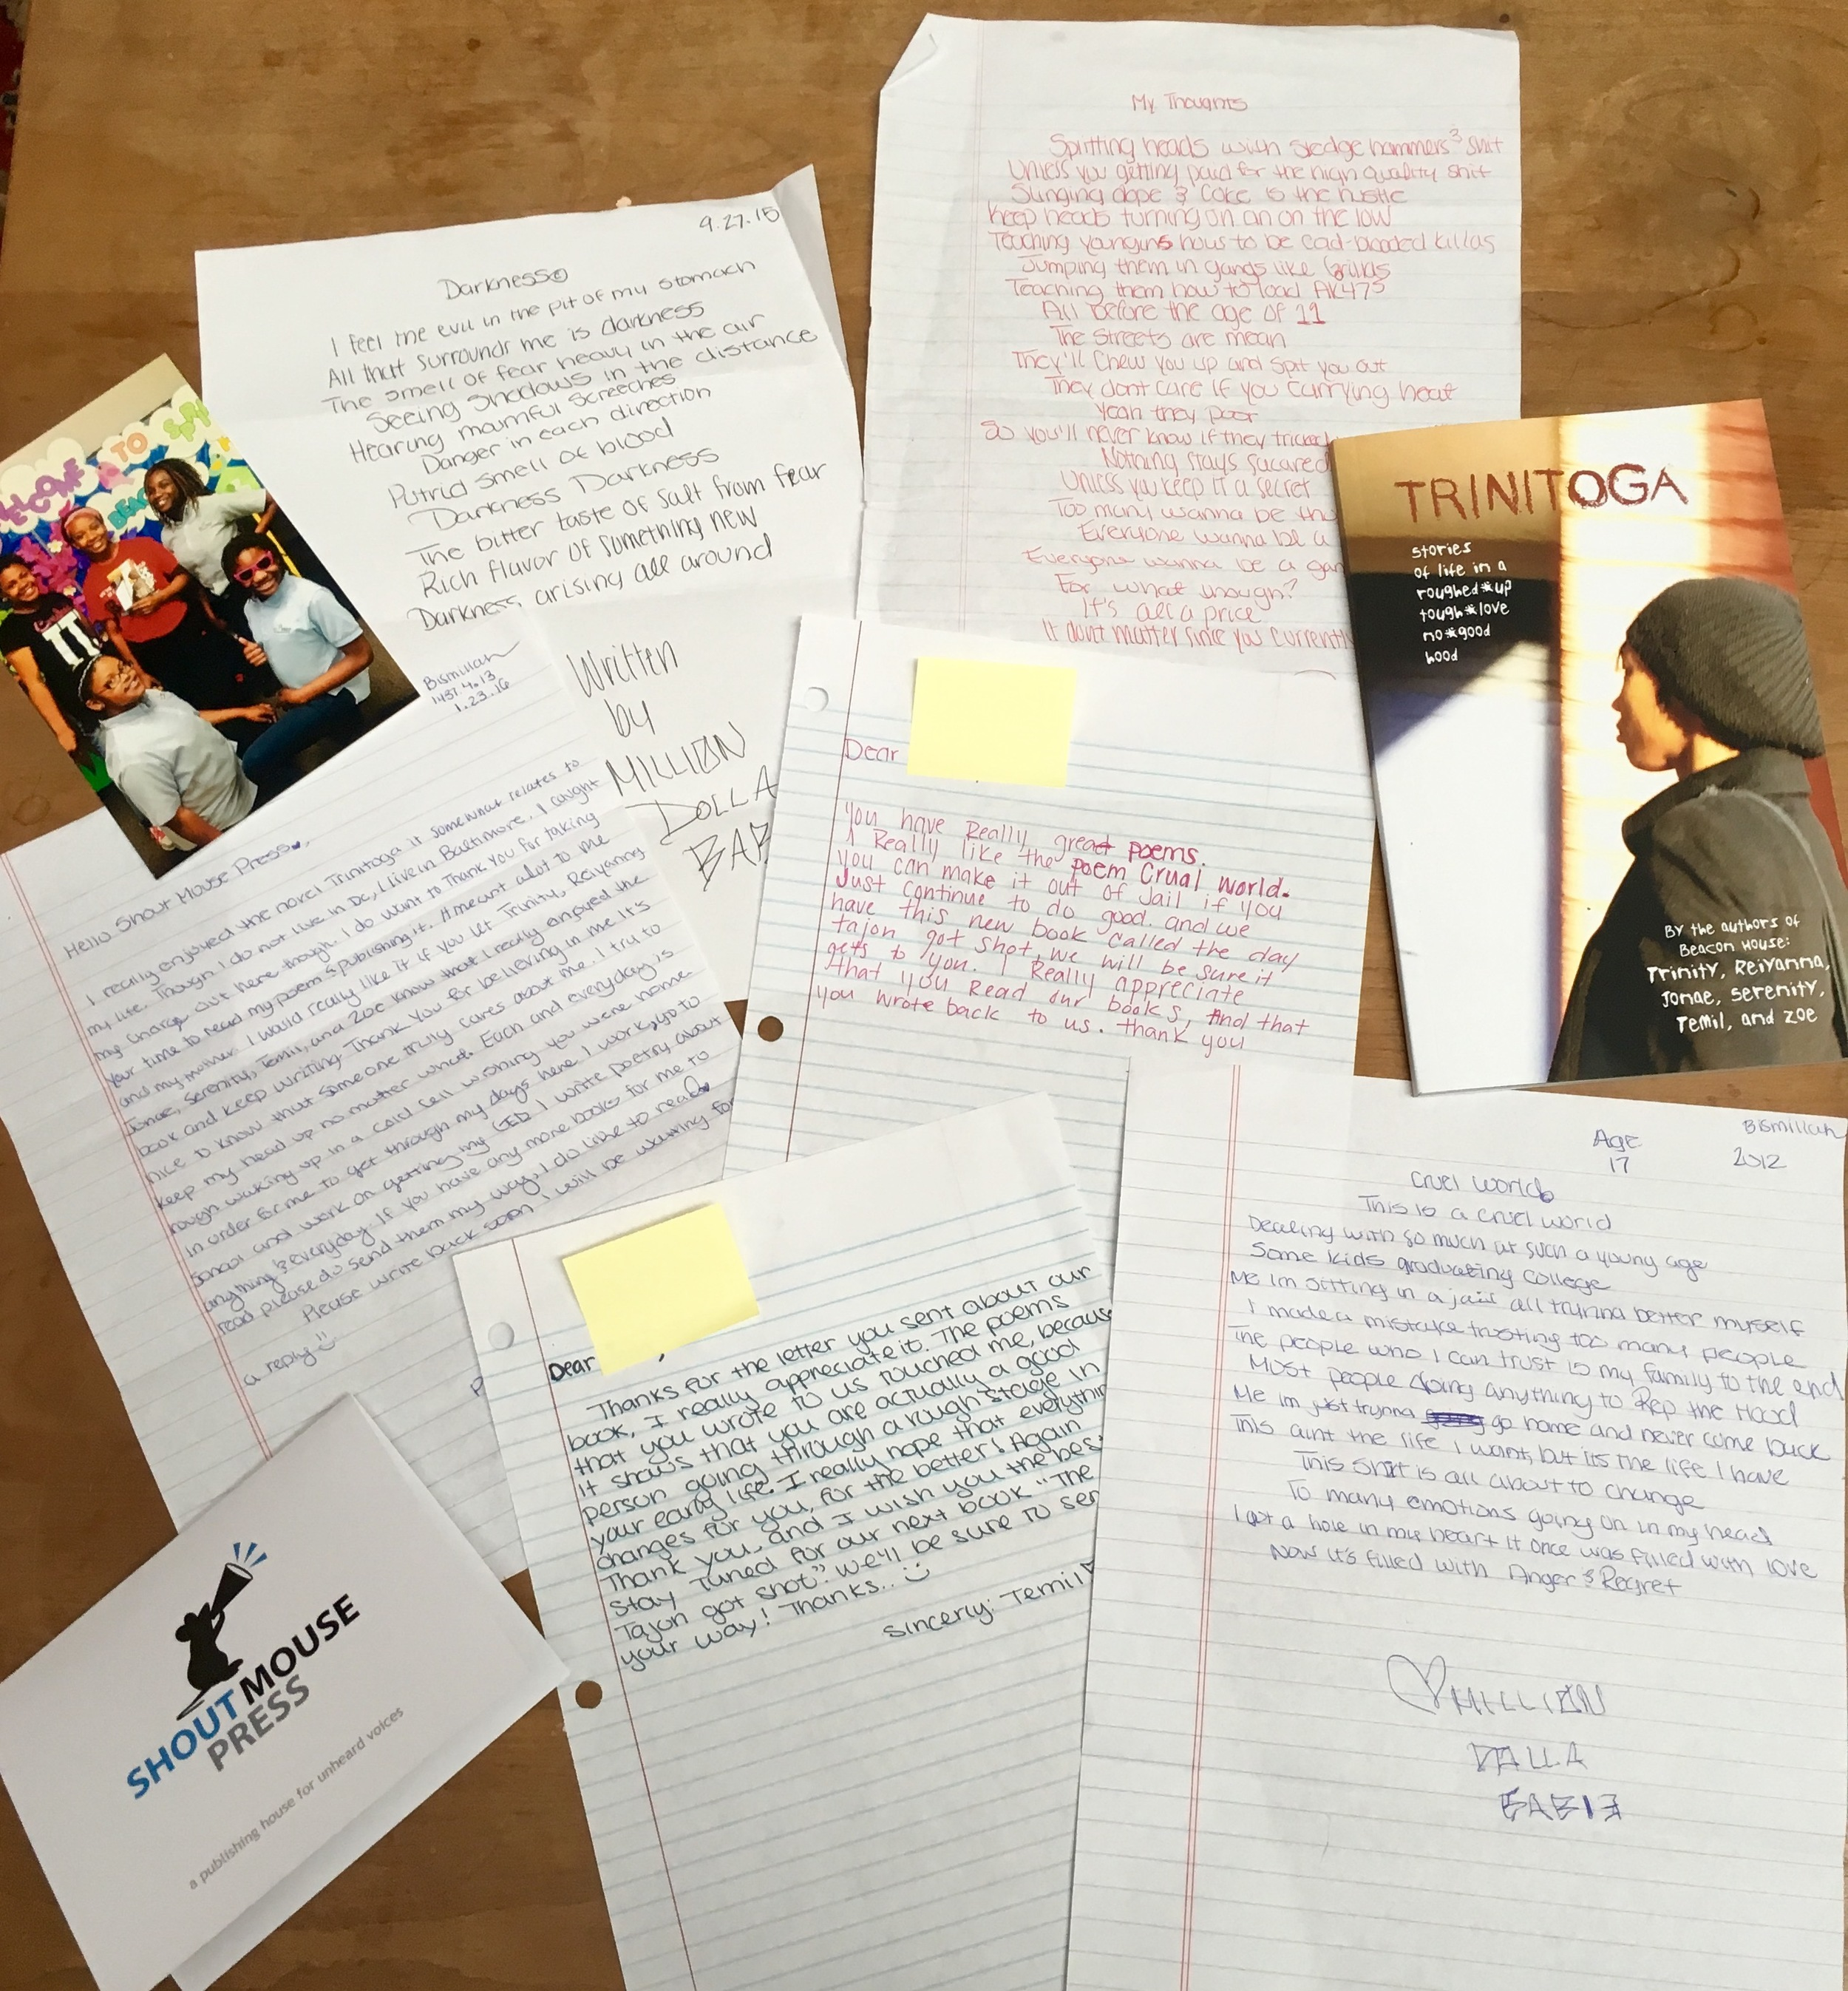 Letter and poems from reader L and Shout Mouse author responses.